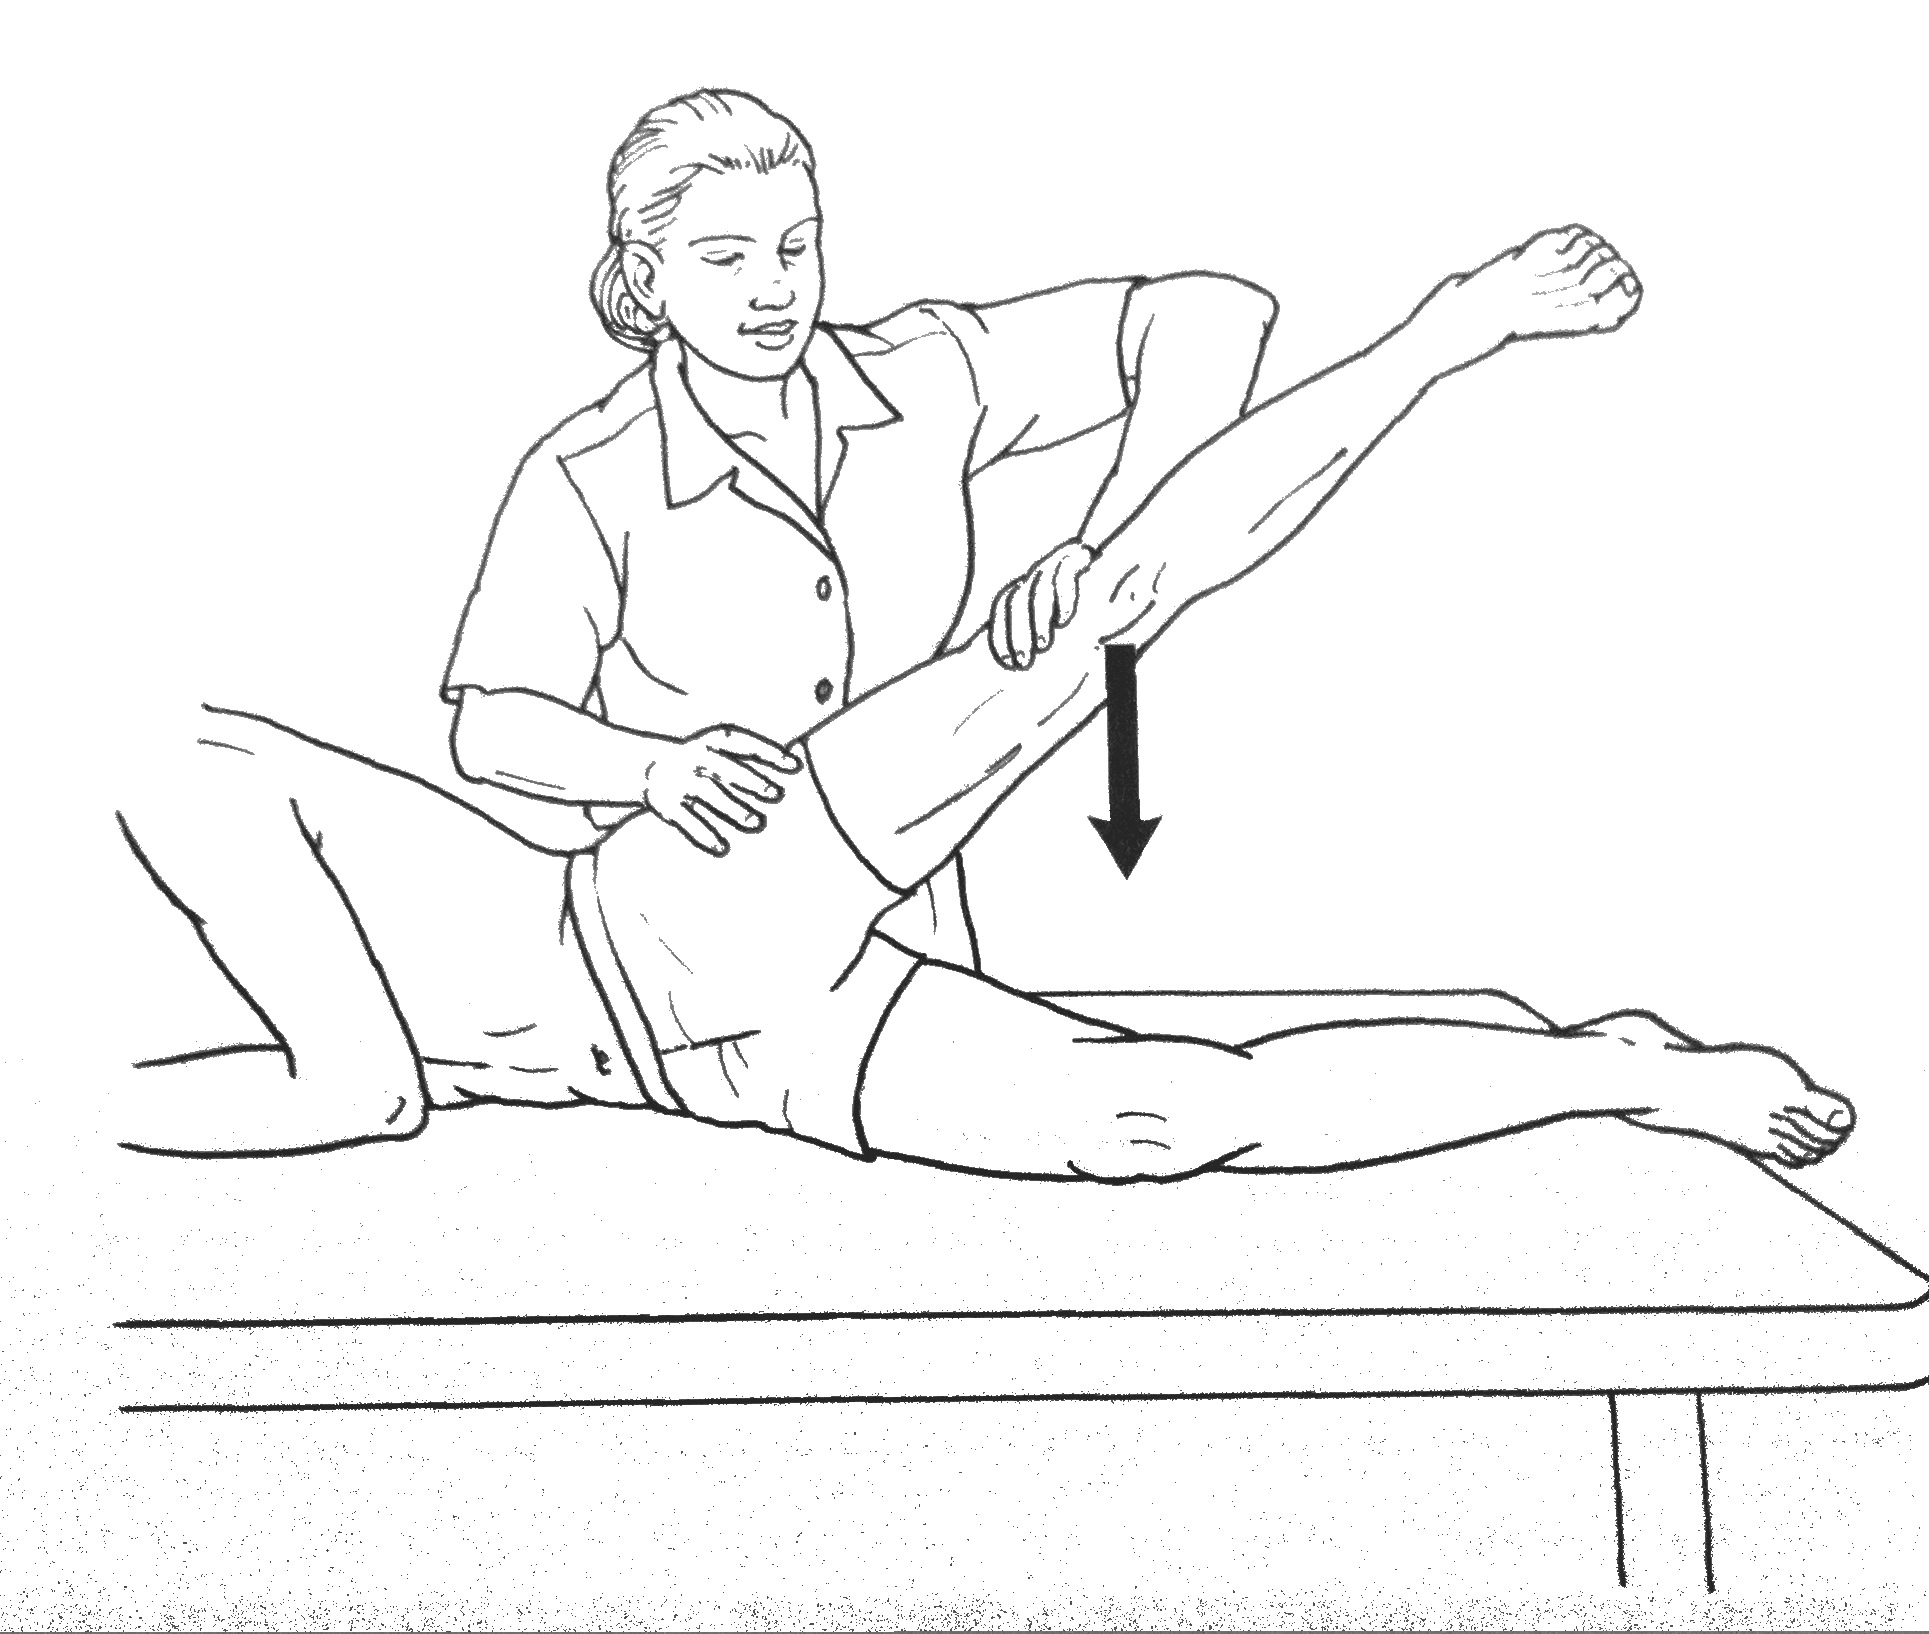 Single Leg Movement And The Lateral Sub System